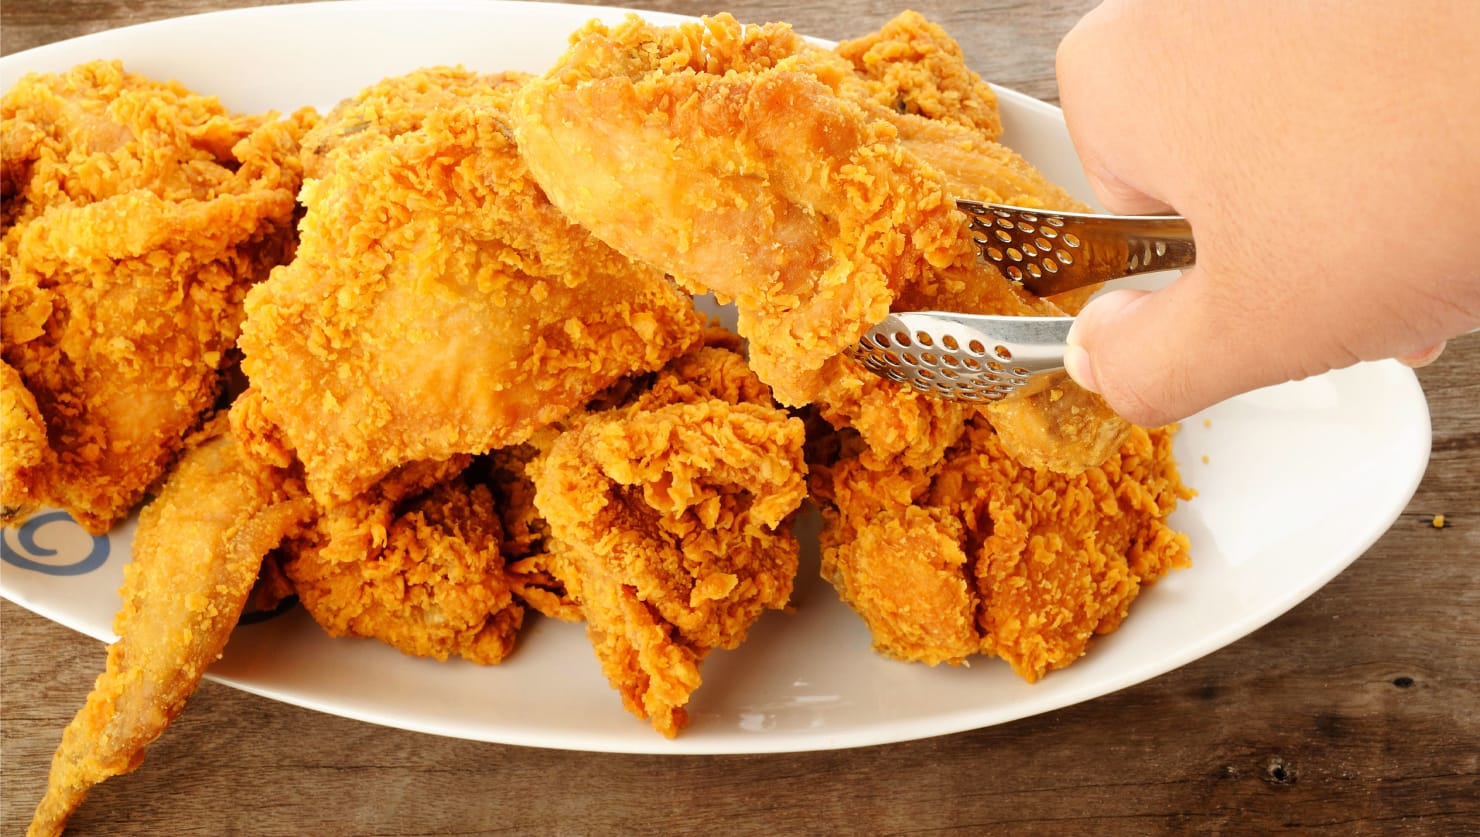 This Is Not Your Grandma's Fried Chicken—It's Better